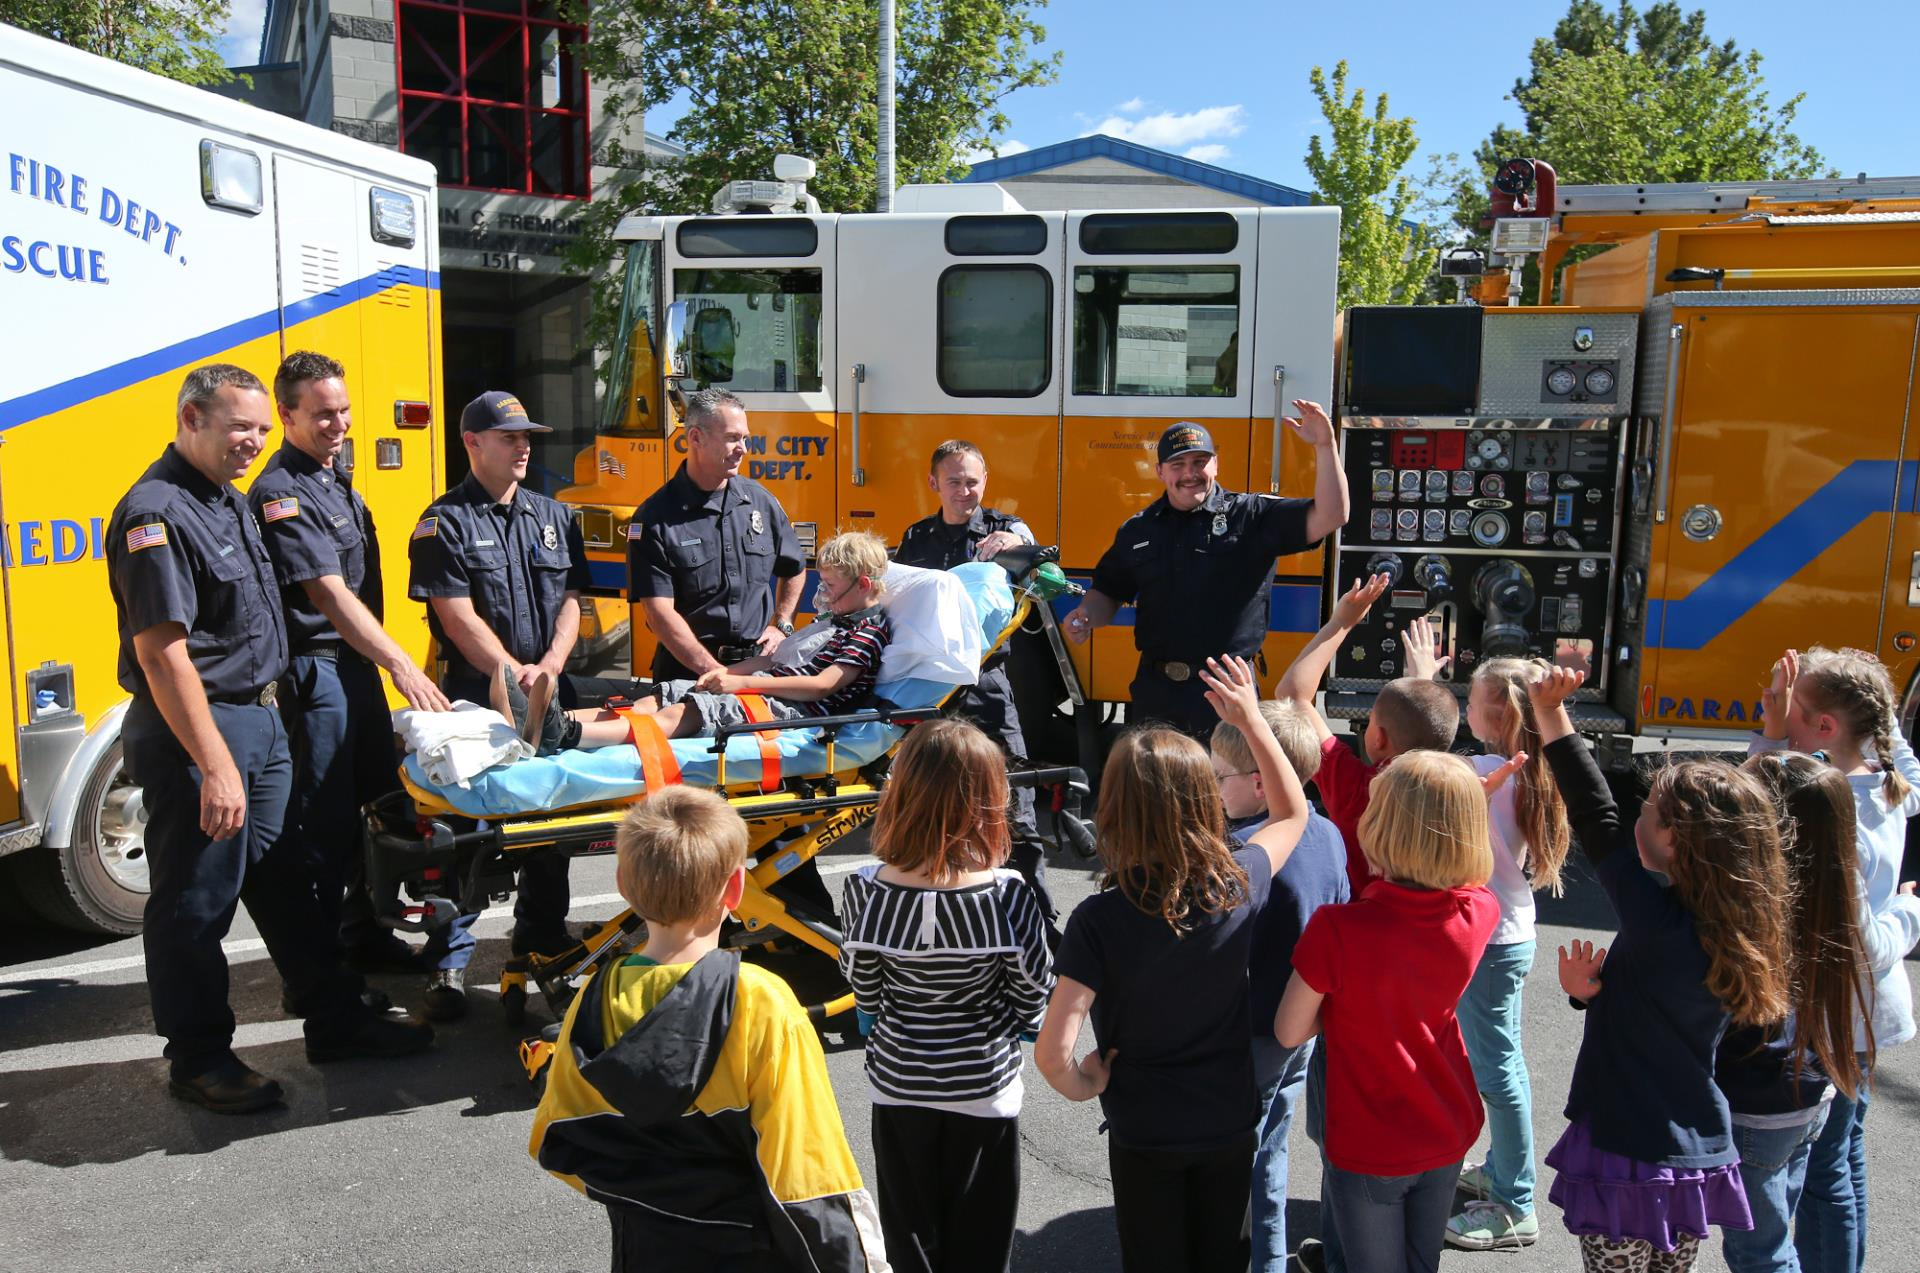 CCFD Provides Fire Safety Education